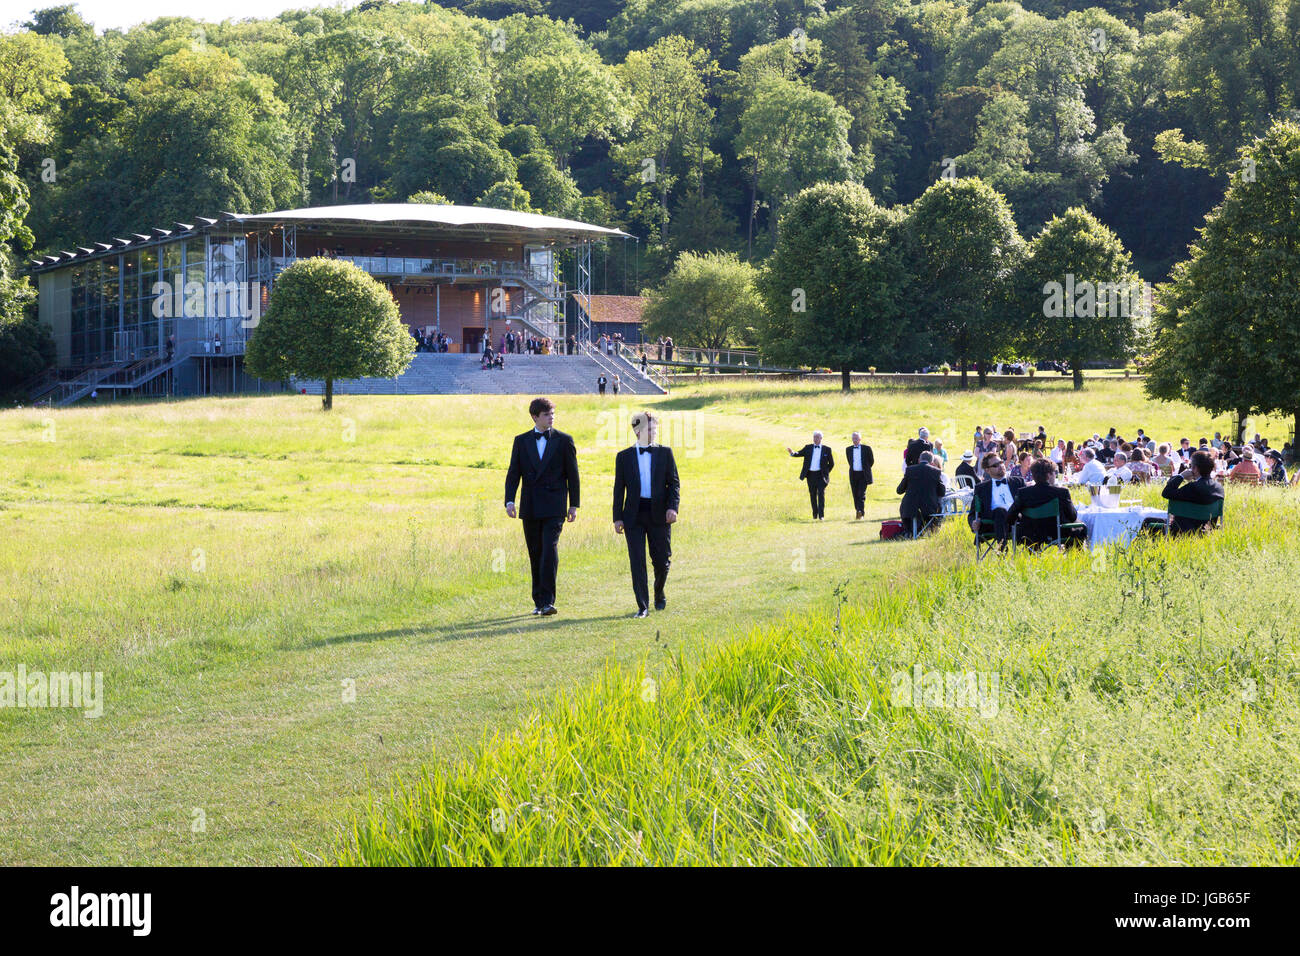 Opera goers at the Opera House, Garsington Opera, Wormsley Park, Stokenchurch, Buckinghamshire England UK - Stock Image